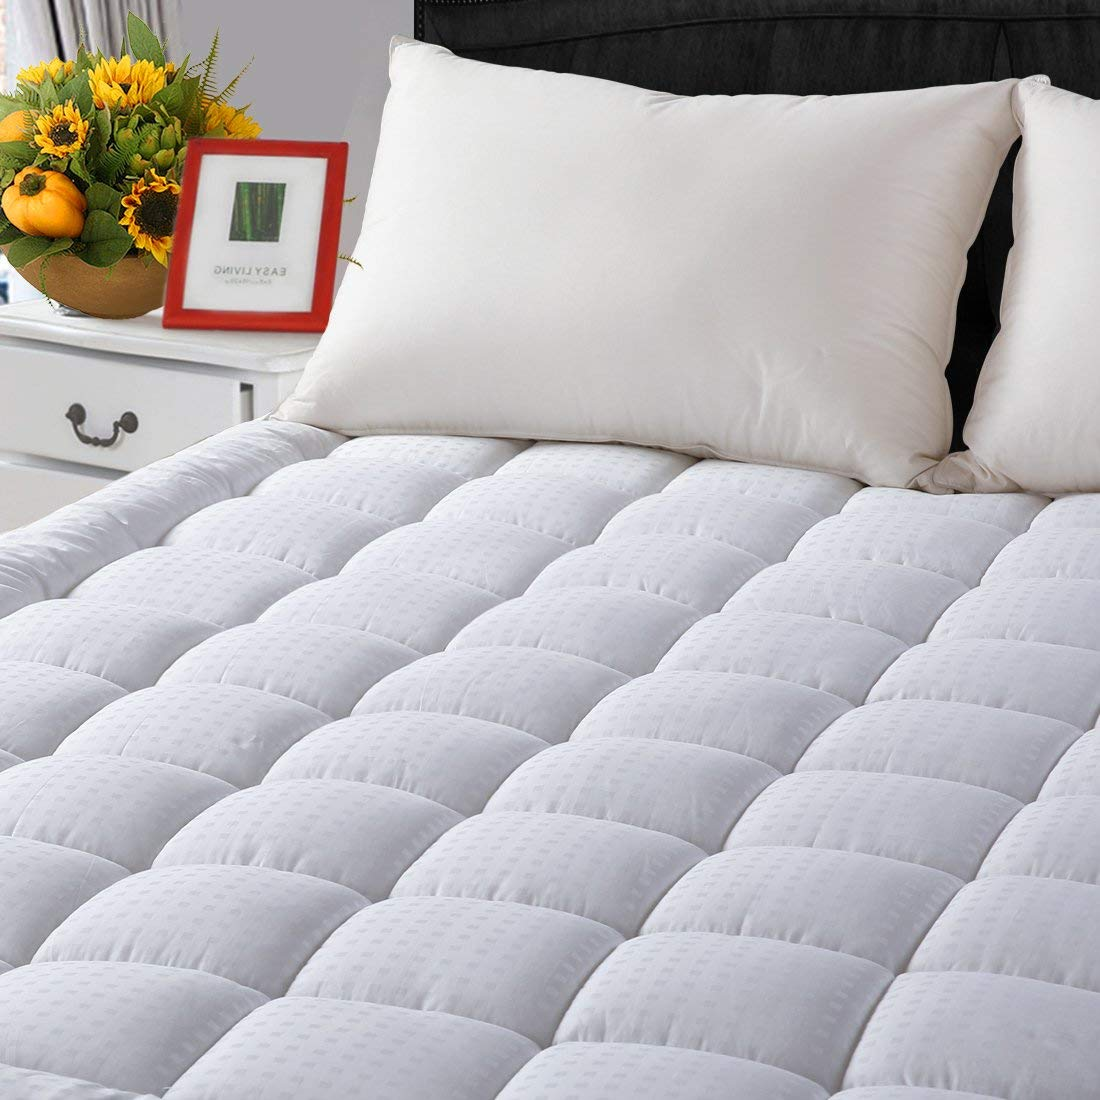 LEISURE TOWN King Cooling Mattress Pad Cover -Fitted Quilted Mattress Topper Down Alternative Fill 8-21 Deep Pocket